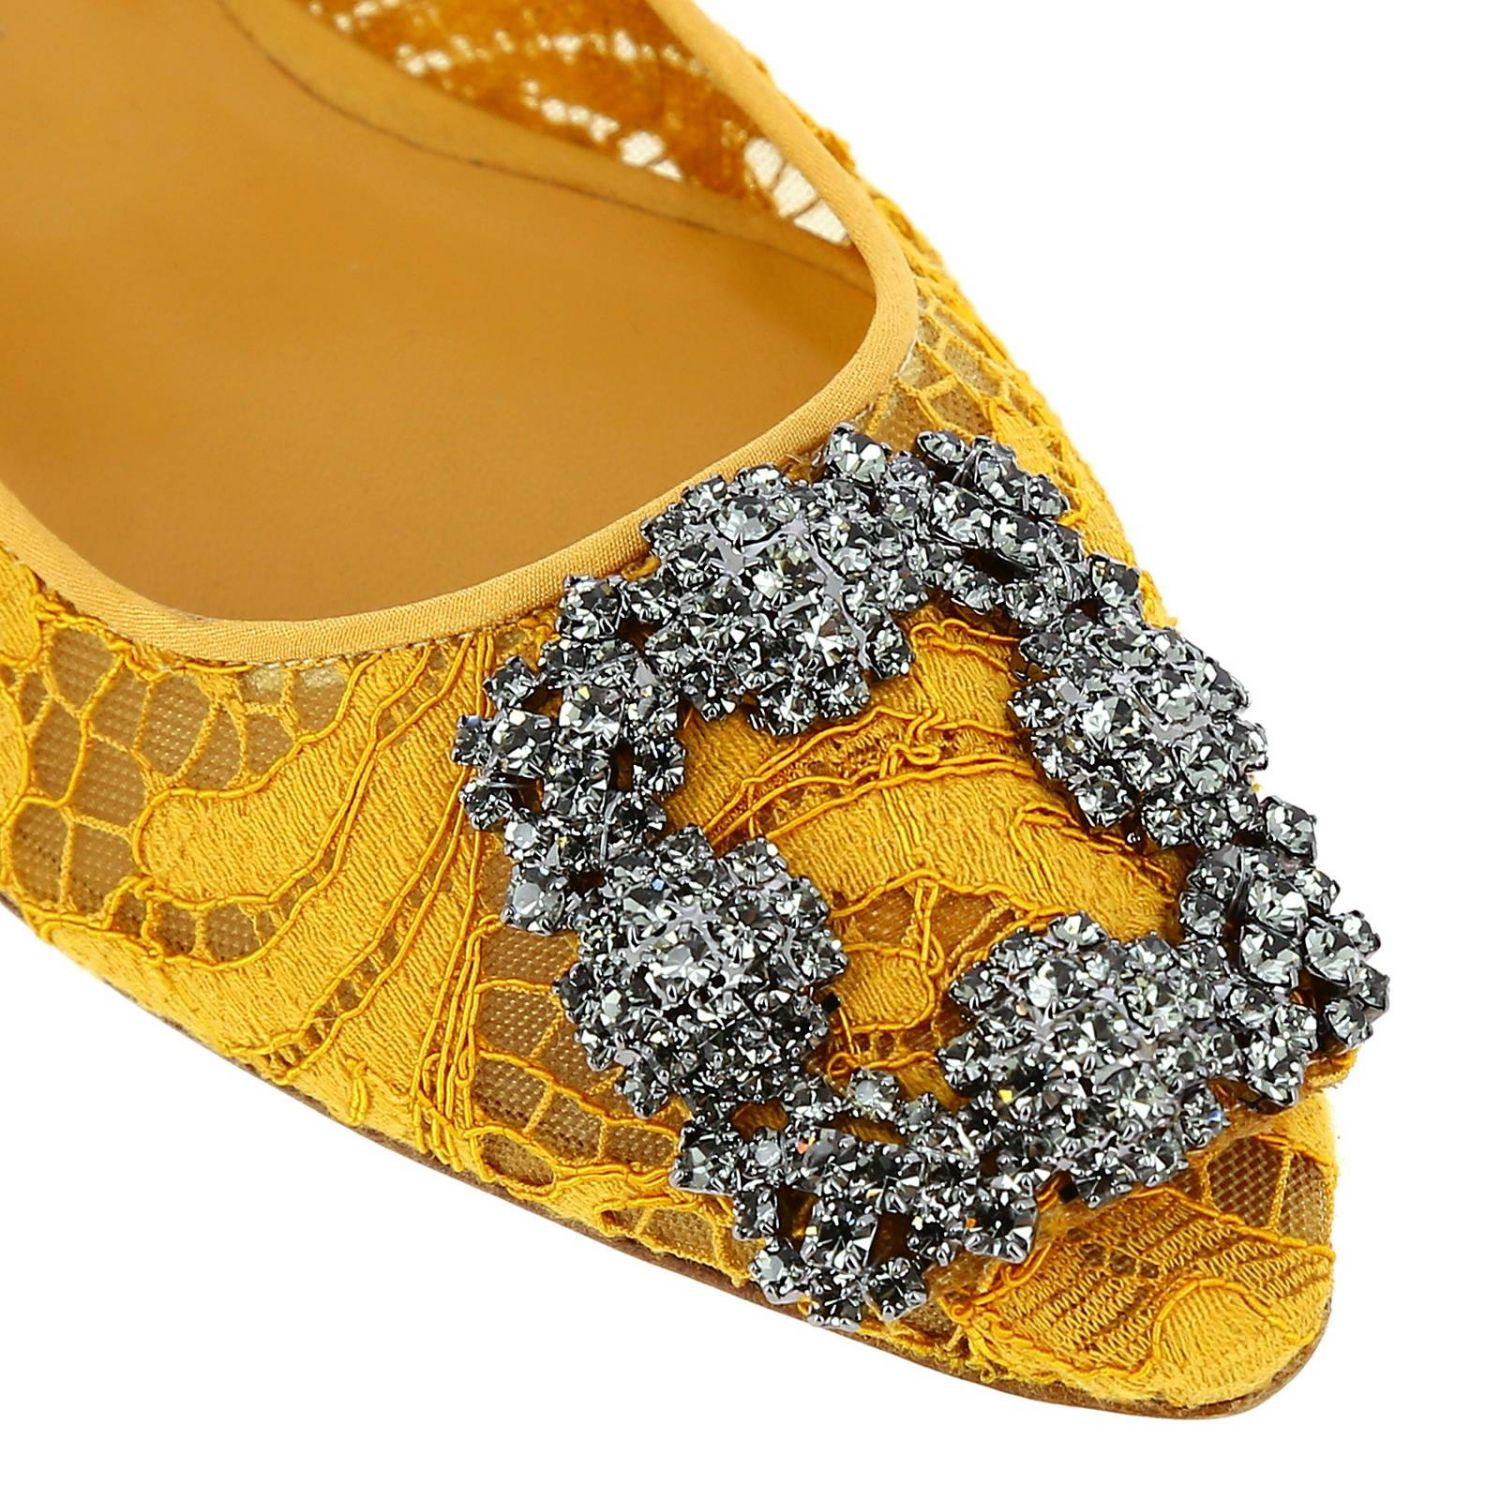 Hangisi Manolo Blahnik ballet flats in lace with smoky rhinestone buckle mustard 3